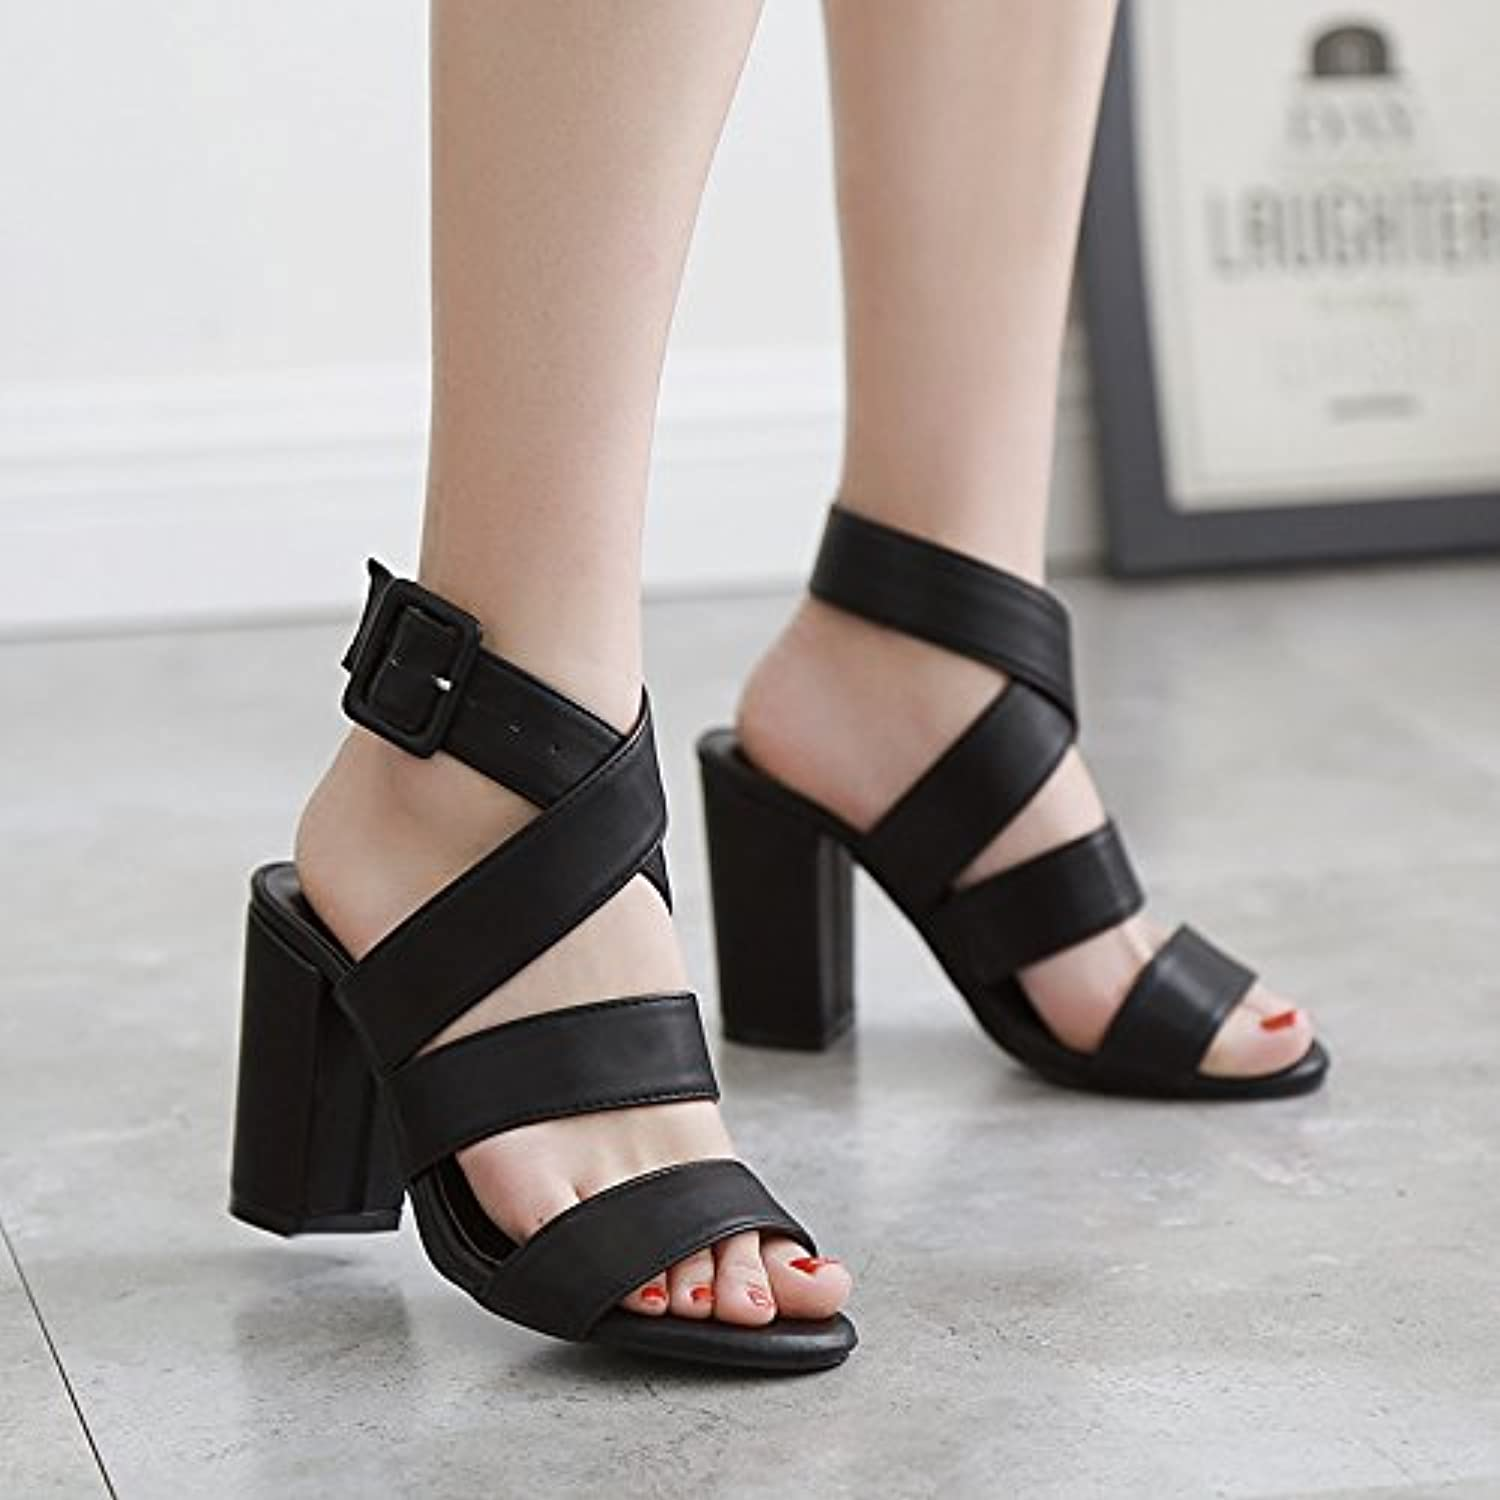 RUGAI-UE Sandals,retro high heeled shoes,Rome toes,hollowed sandals,ladies